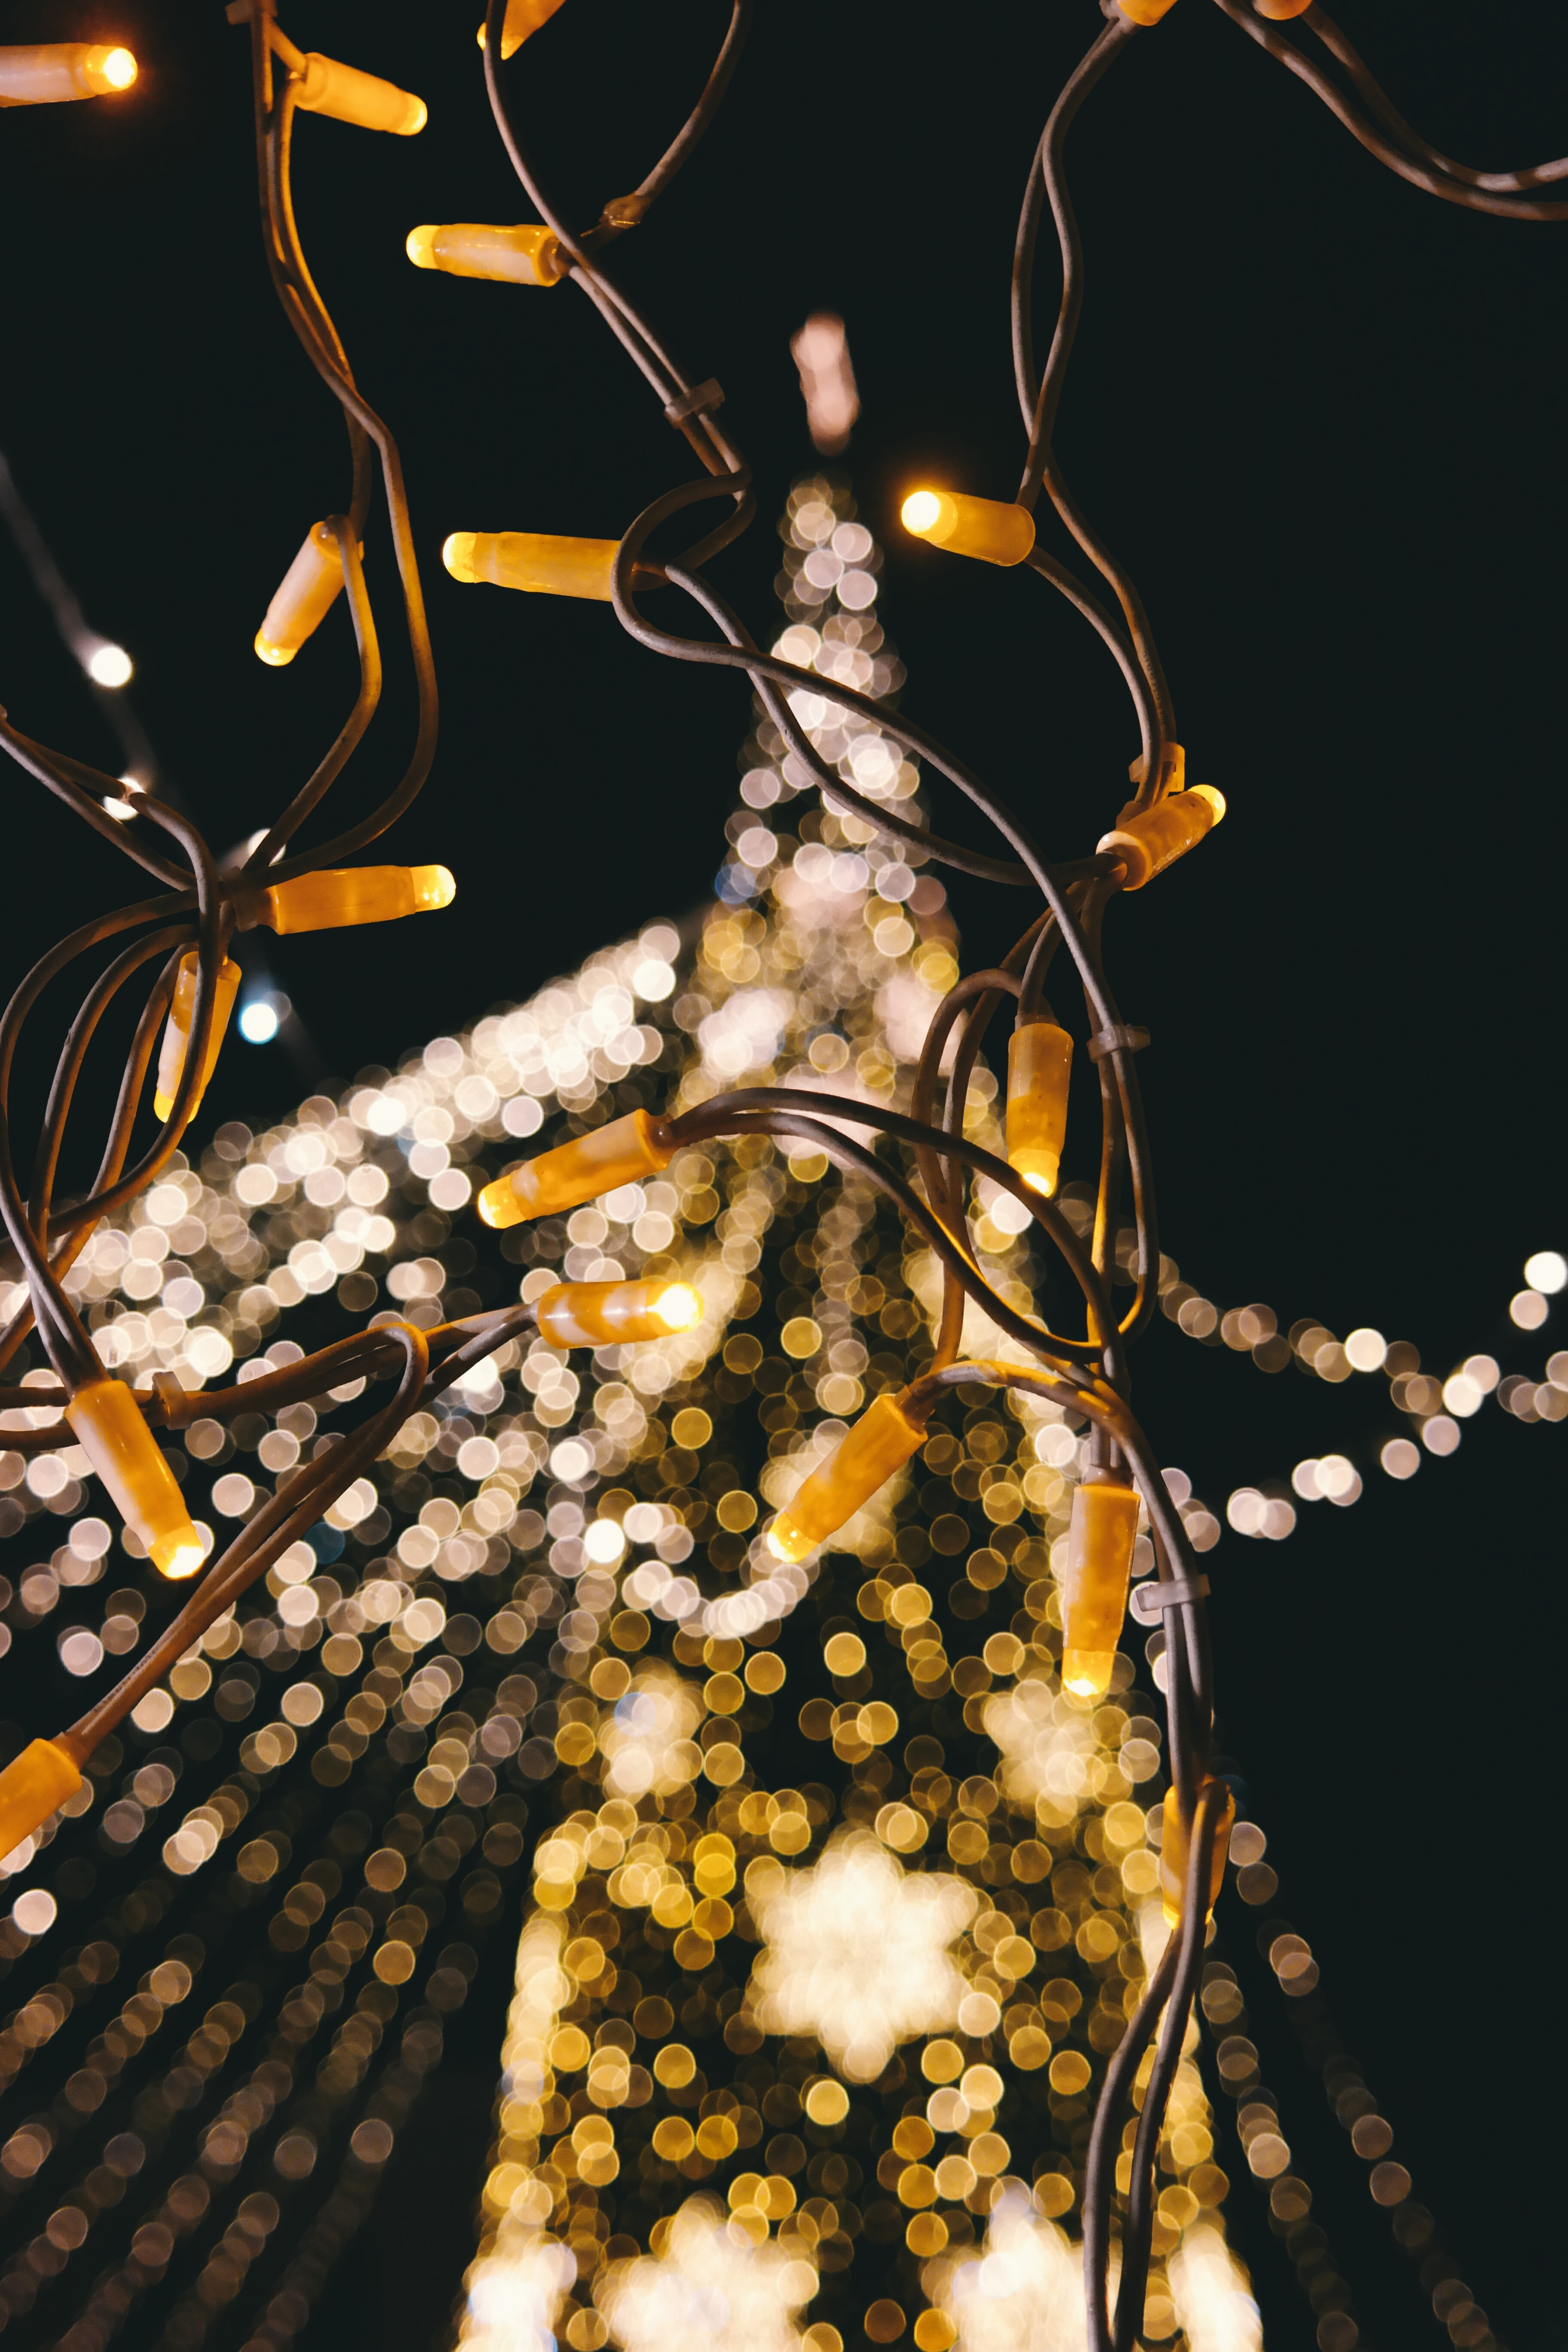 A blurred shot of a Christmas tree full of lights.